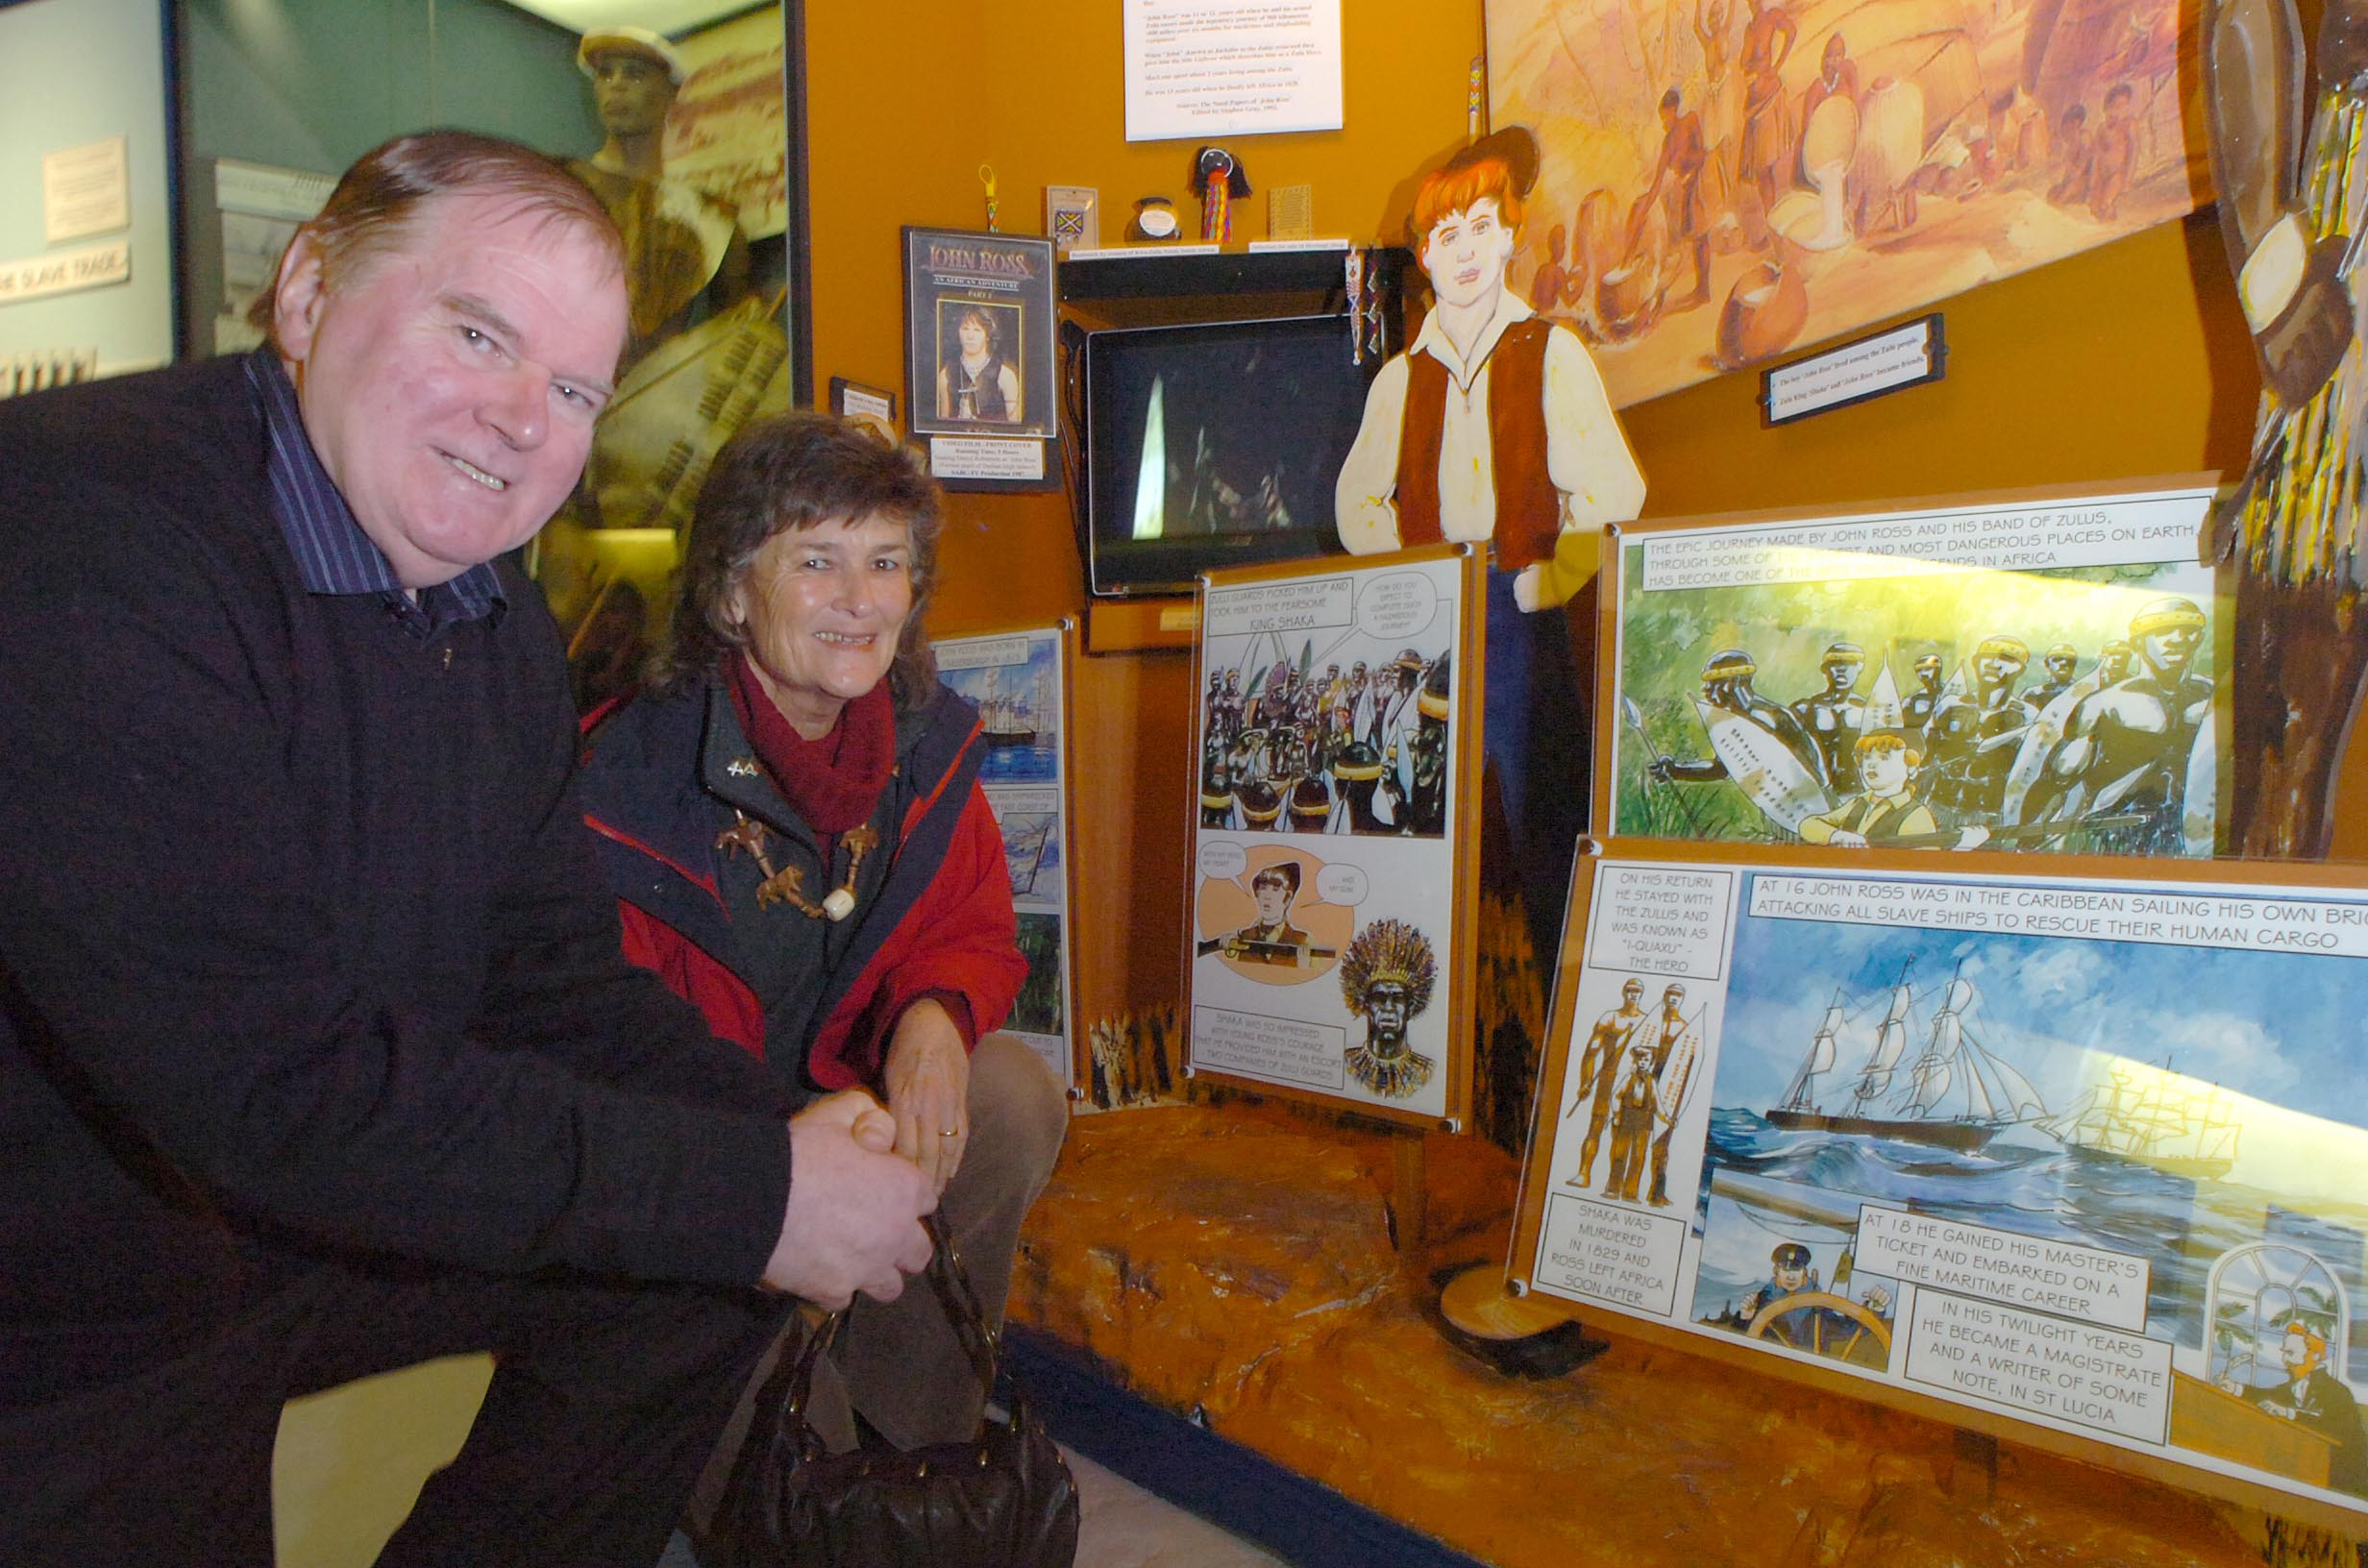 Heritge Centre chairman Ian Watson show the Charles Maclean exhibit to Jenny Hawke, from South Africa, on a previous visit.